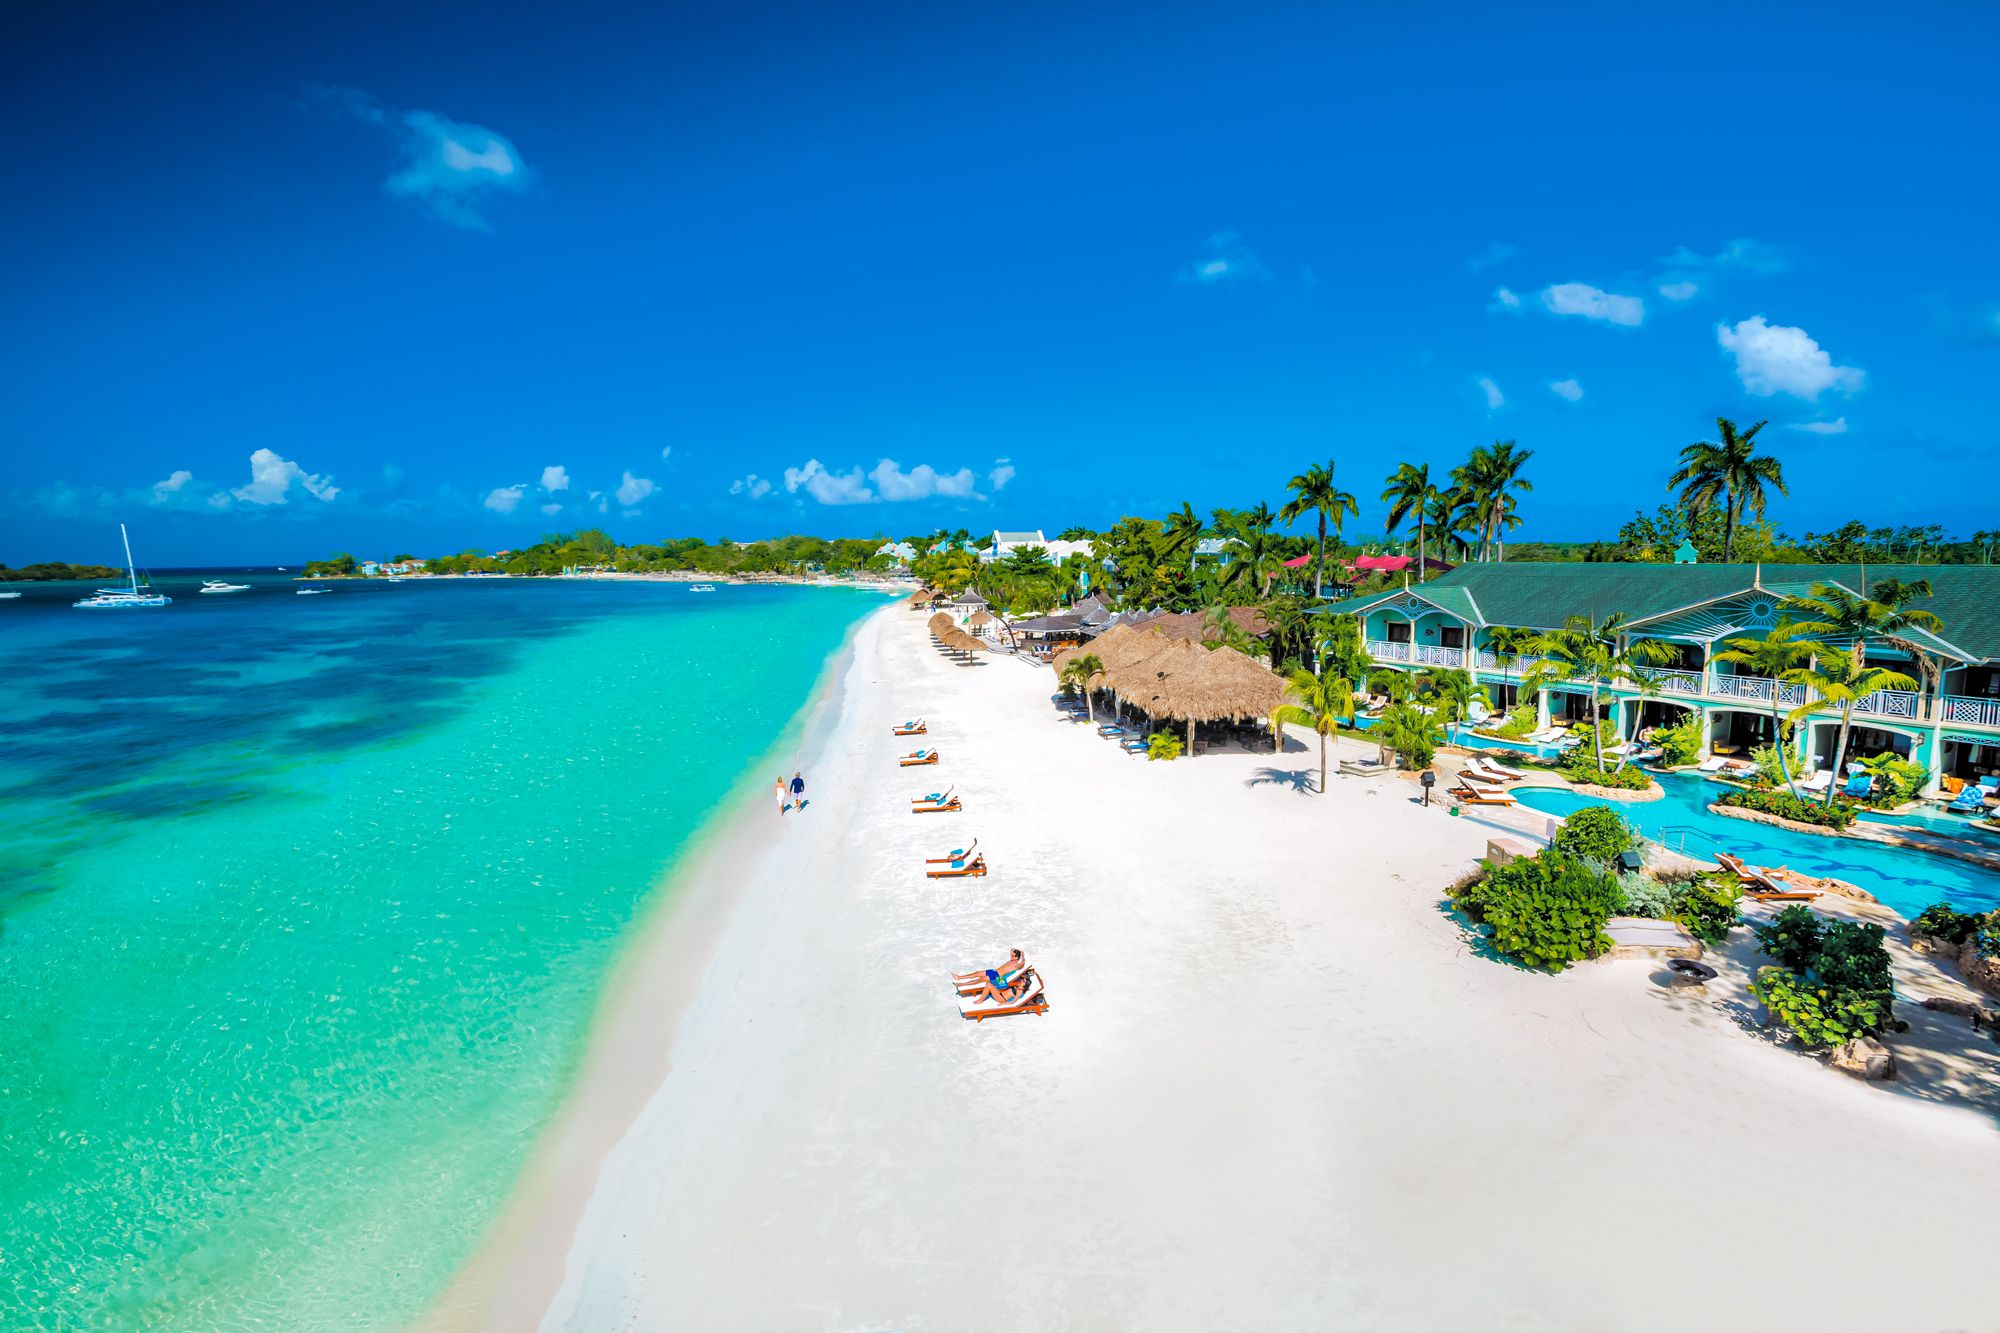 Sandals Negril Beach Overview